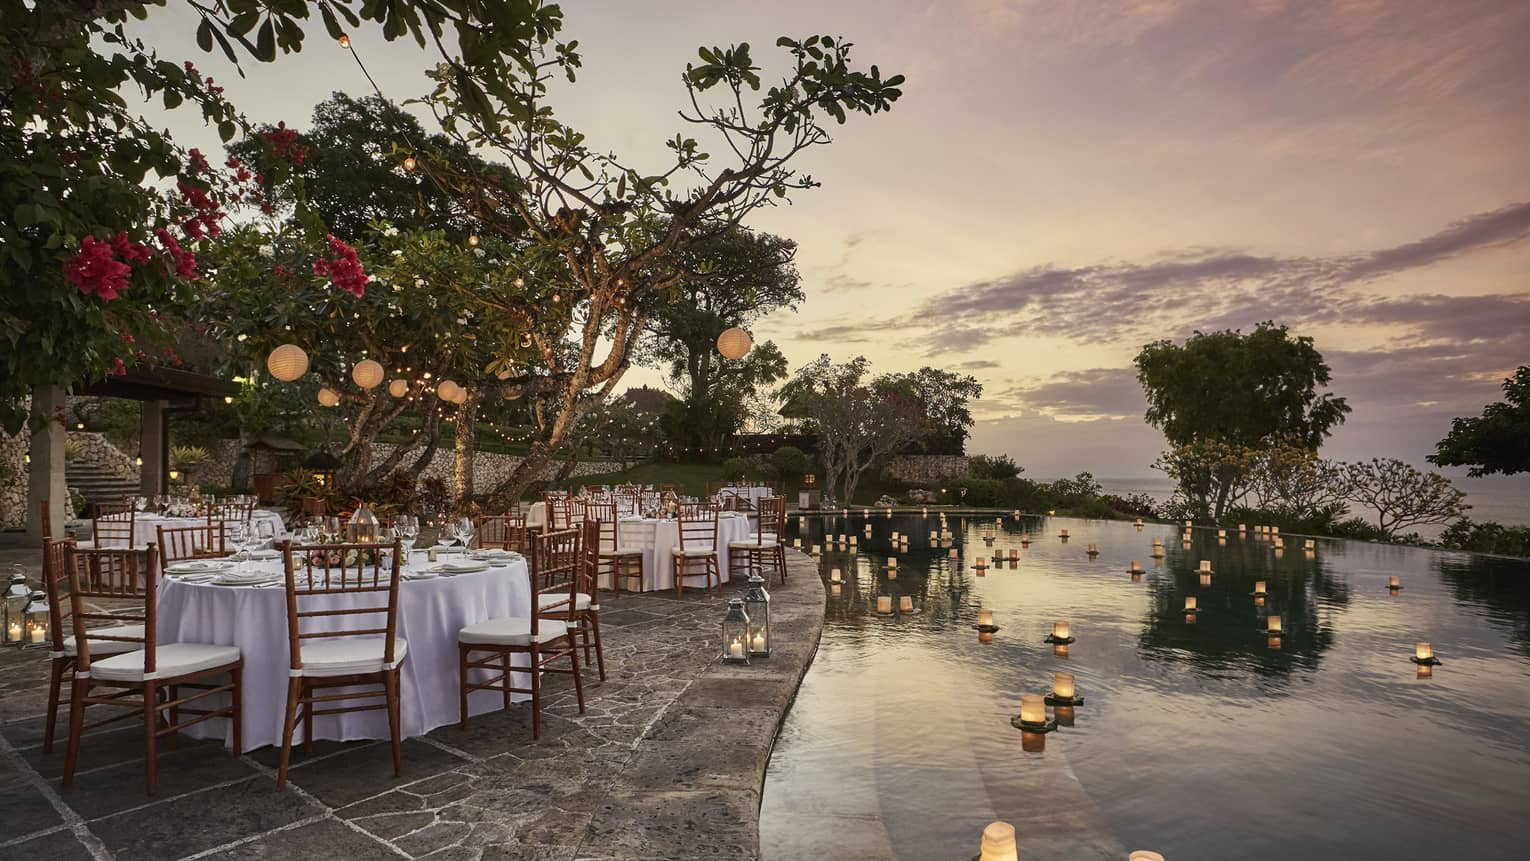 Pool Terrace banquet dining tables by candles floating on water at sunset